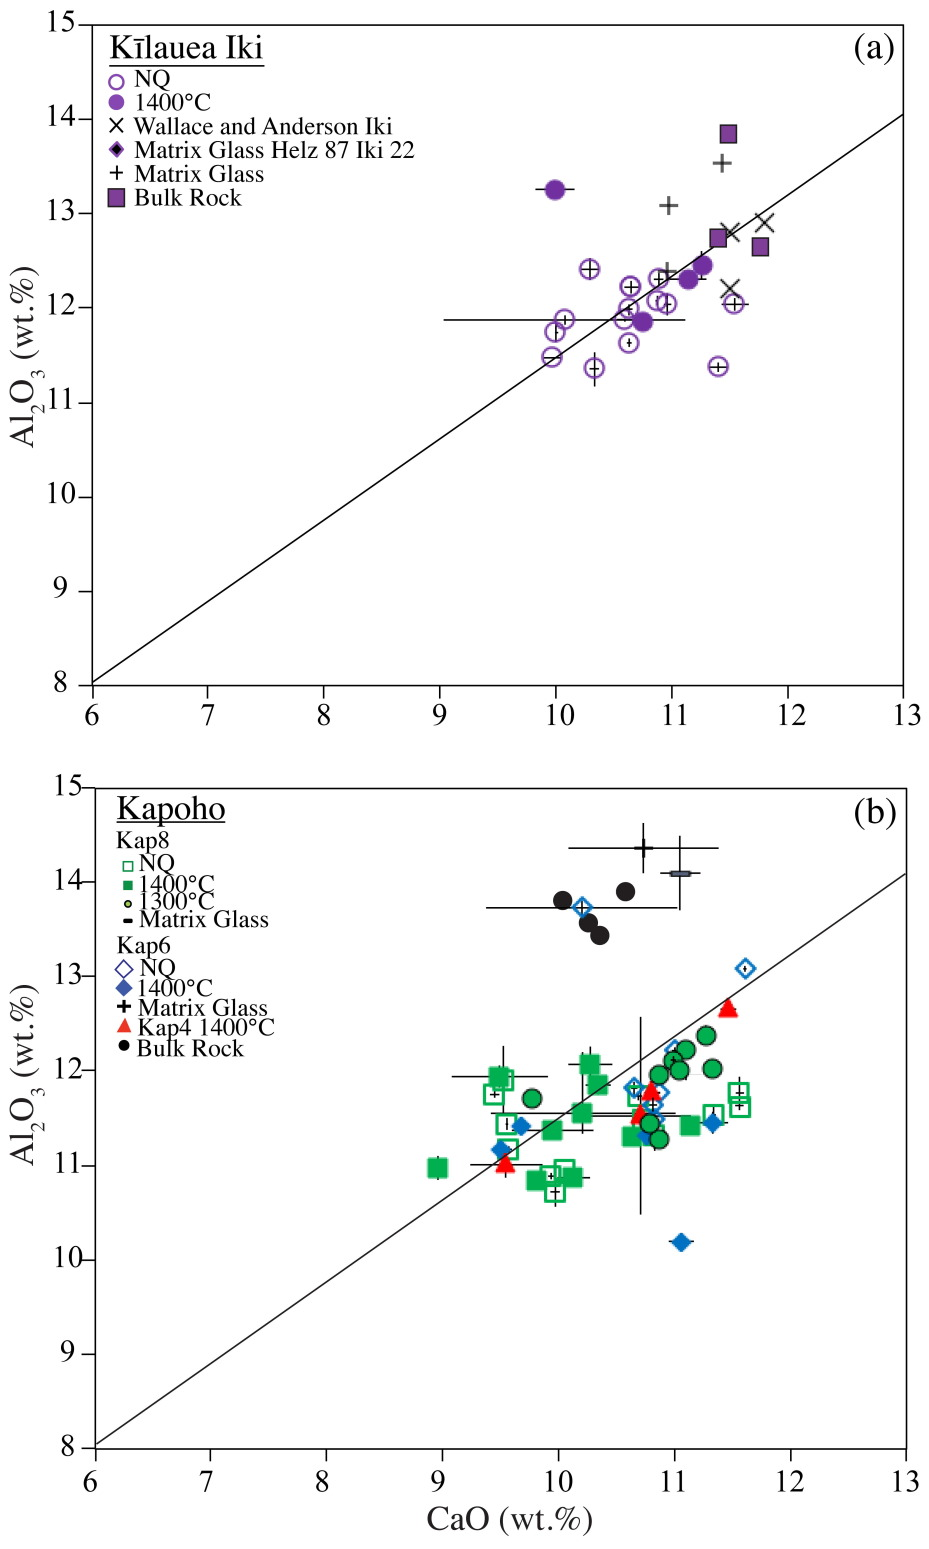 Magma transport and olivine crystallization depths in klaueas cao vs pooptronica